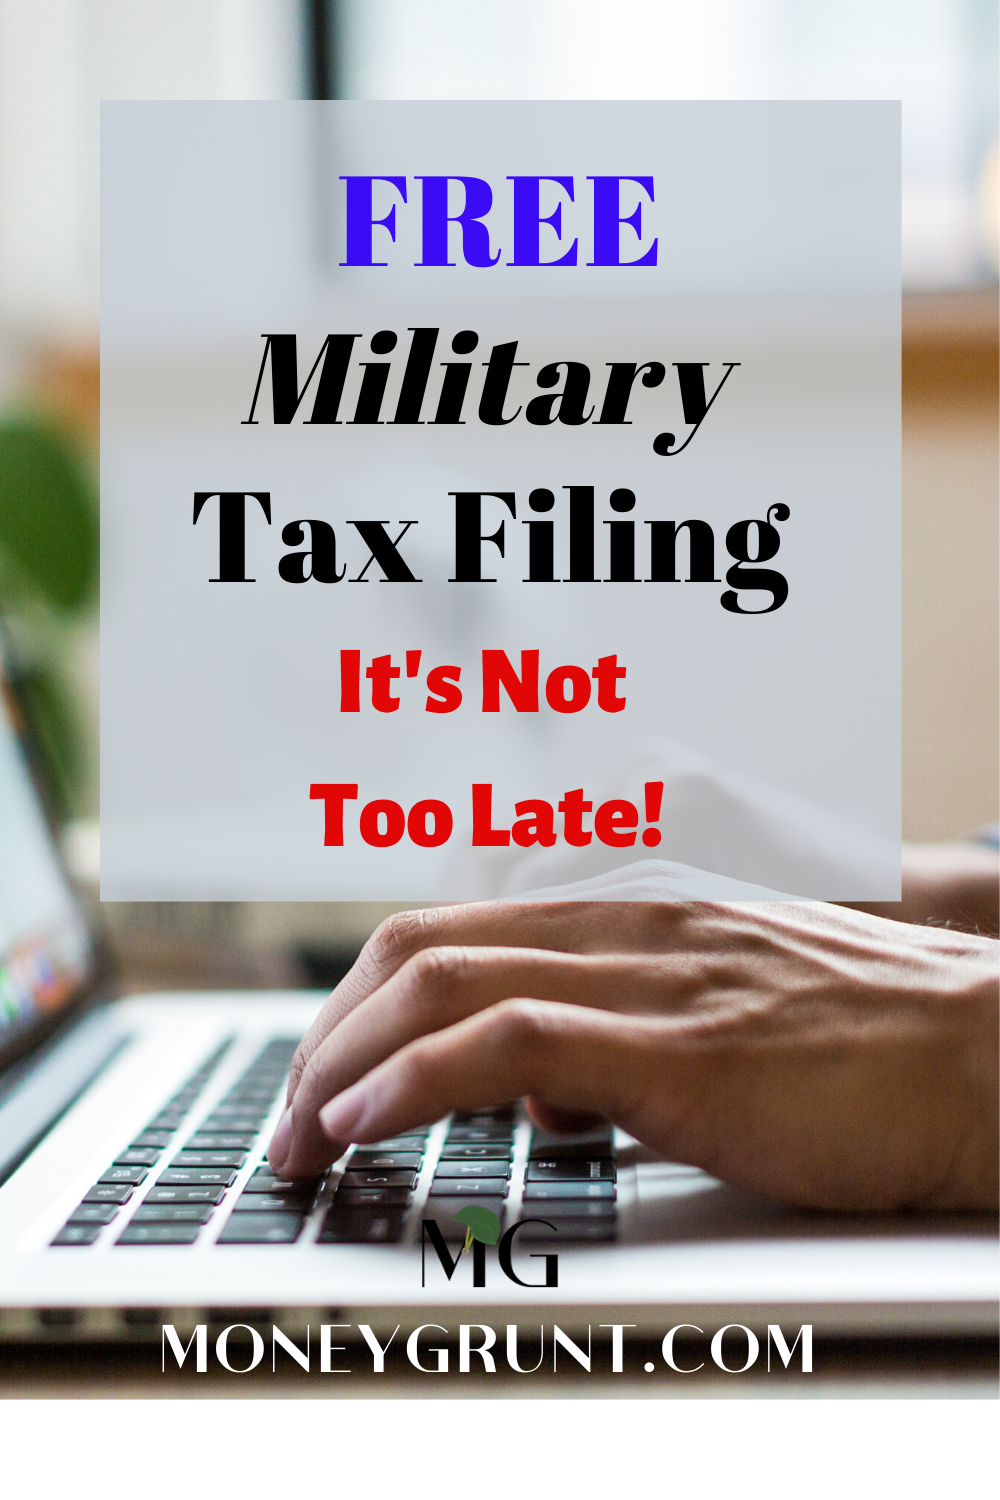 Tax season is in full swing. Here is a list of free